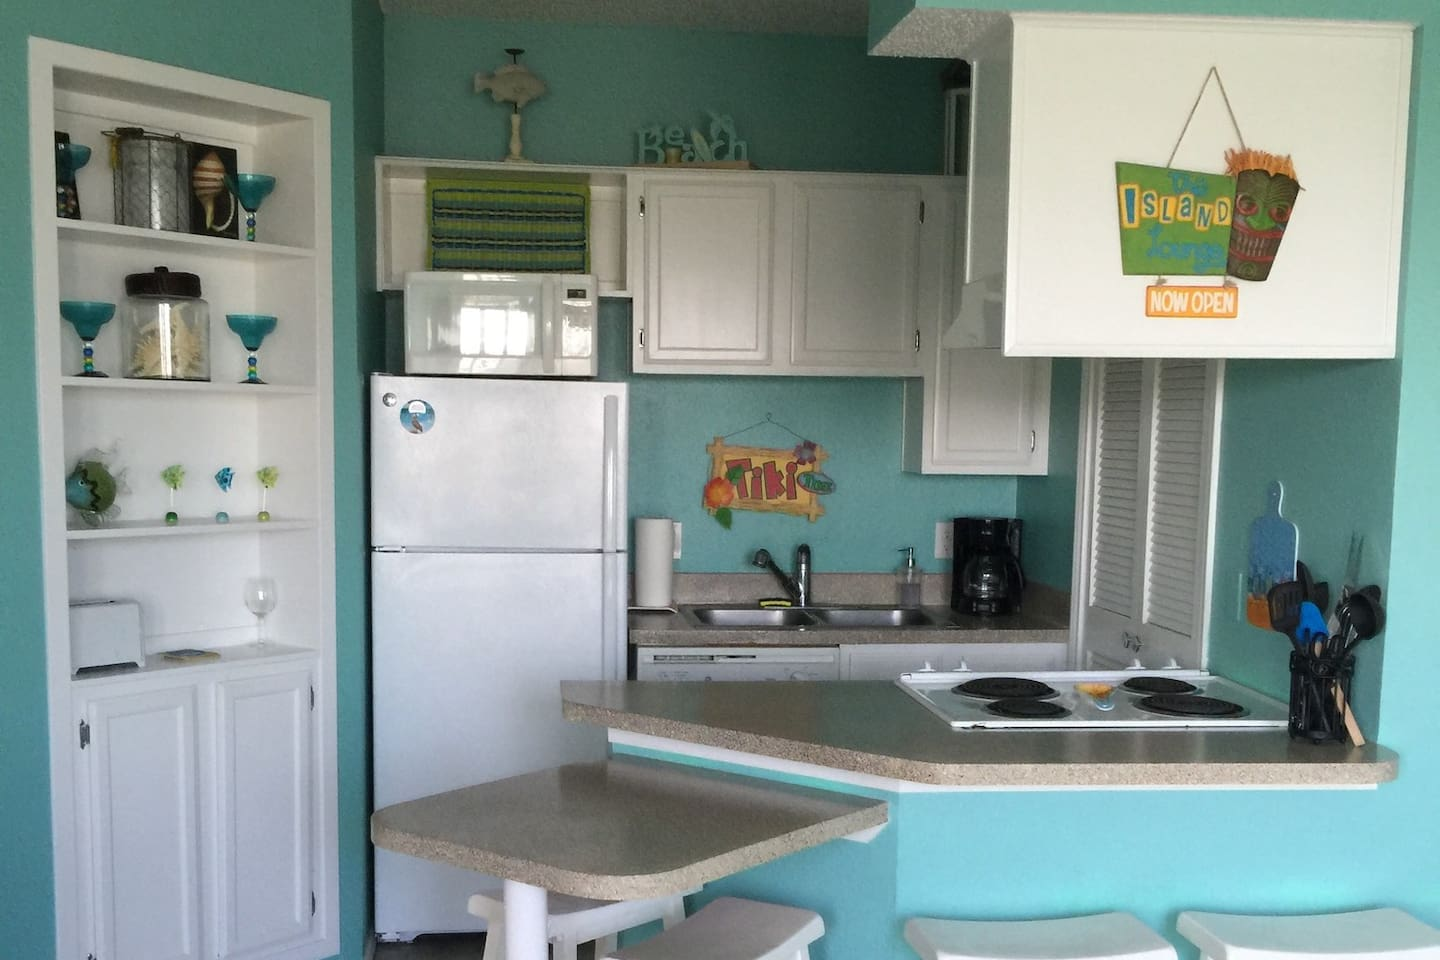 Kitchen with fridge, dishwasher, microwave, stove, oven, full sized washer and dryer